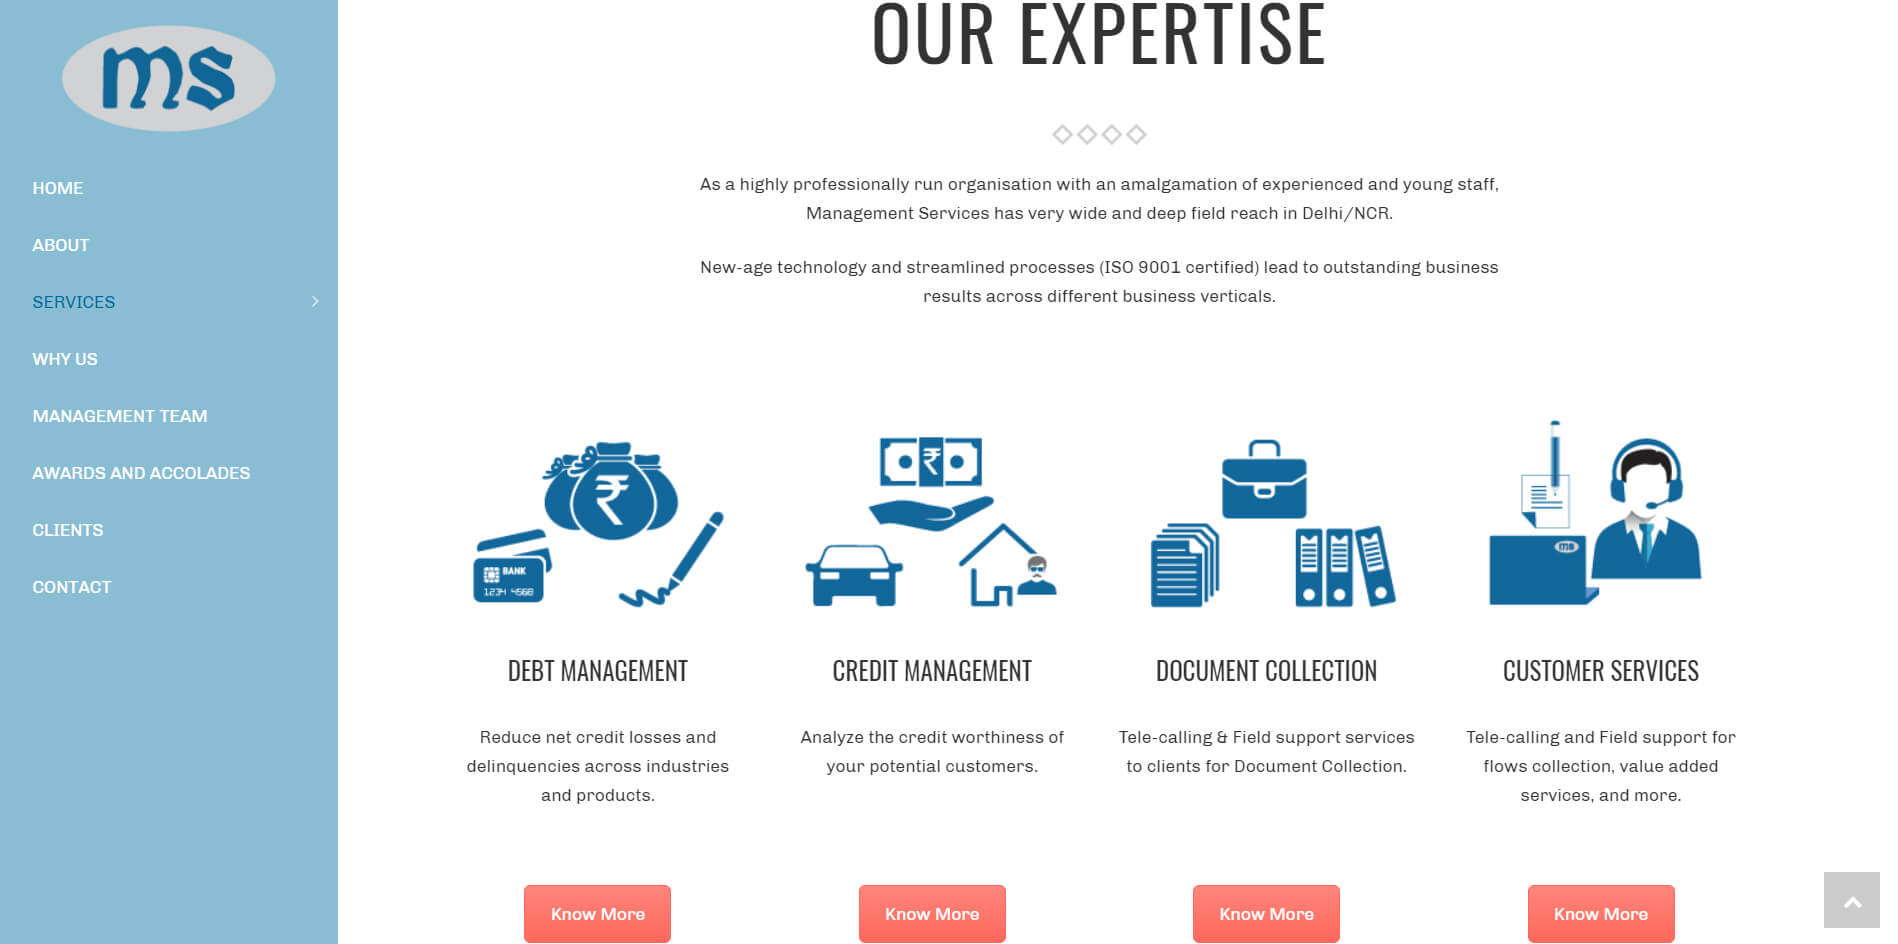 management-services-expertise